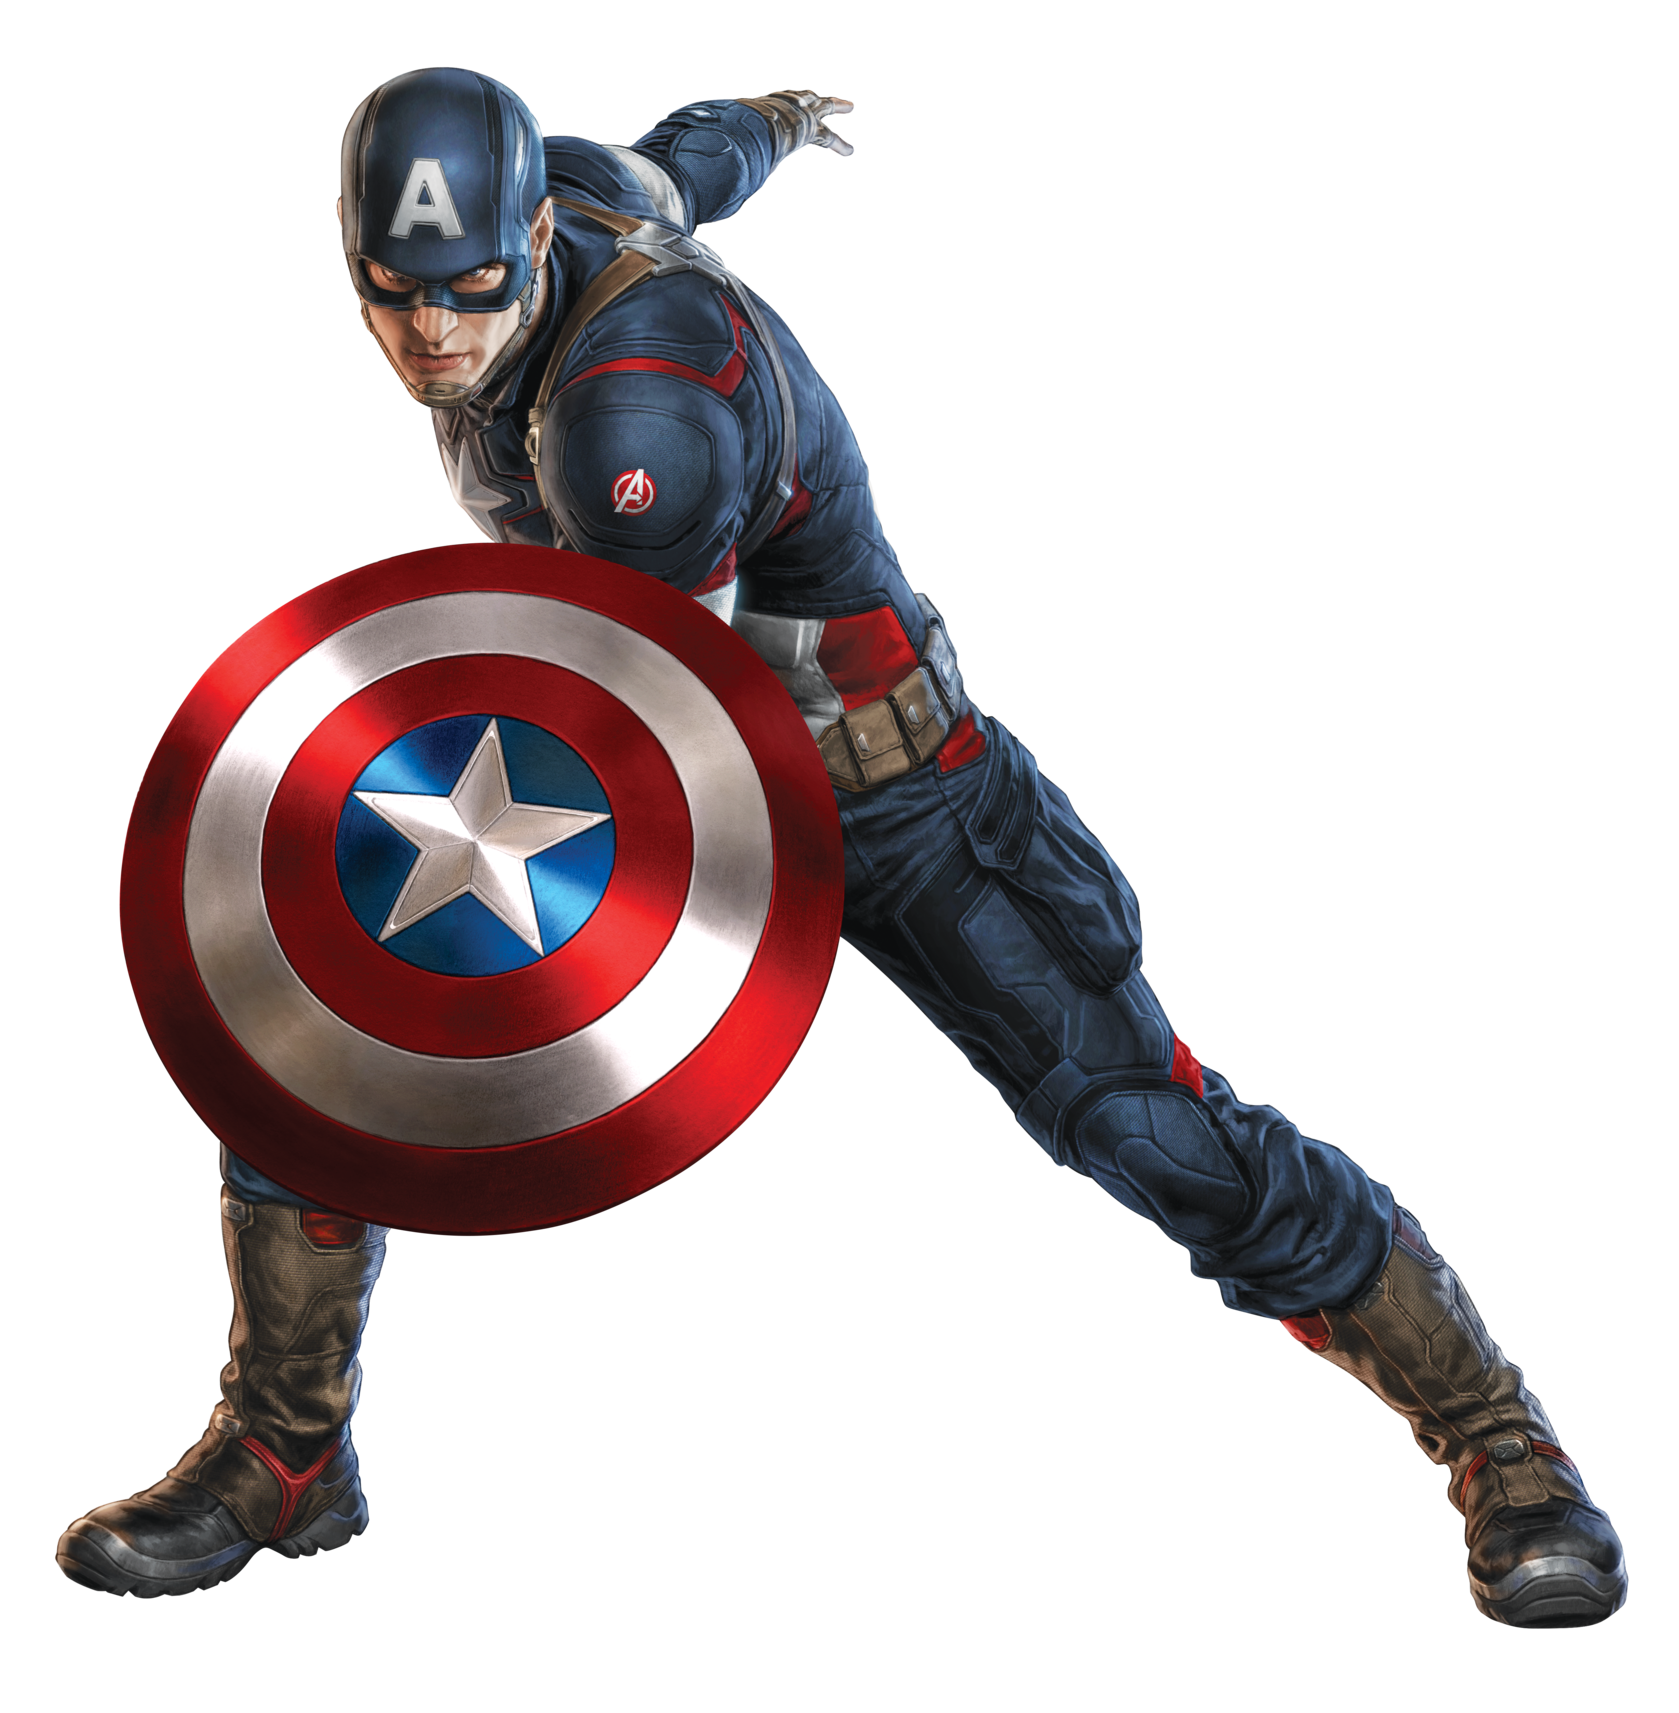 image aou captain america 2shield marvel cinematic universe wiki fandom powered. Black Bedroom Furniture Sets. Home Design Ideas